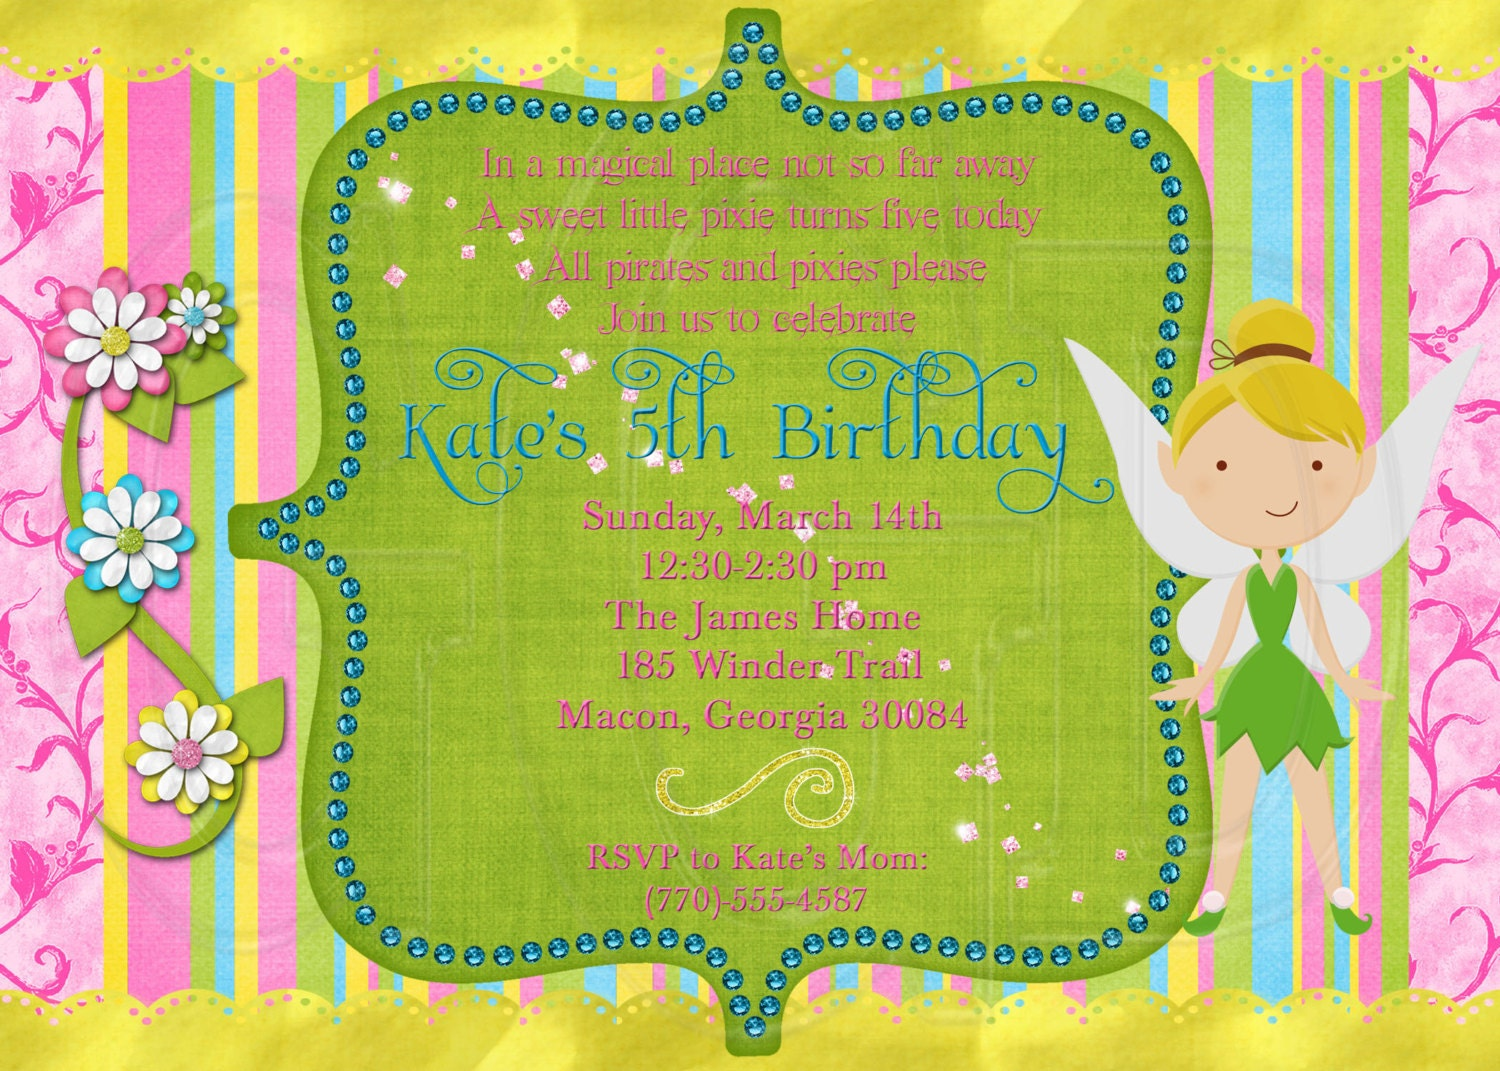 tinkerbell invitation digital invite printable tinkerbell invitation digital invite printable 128270zoom